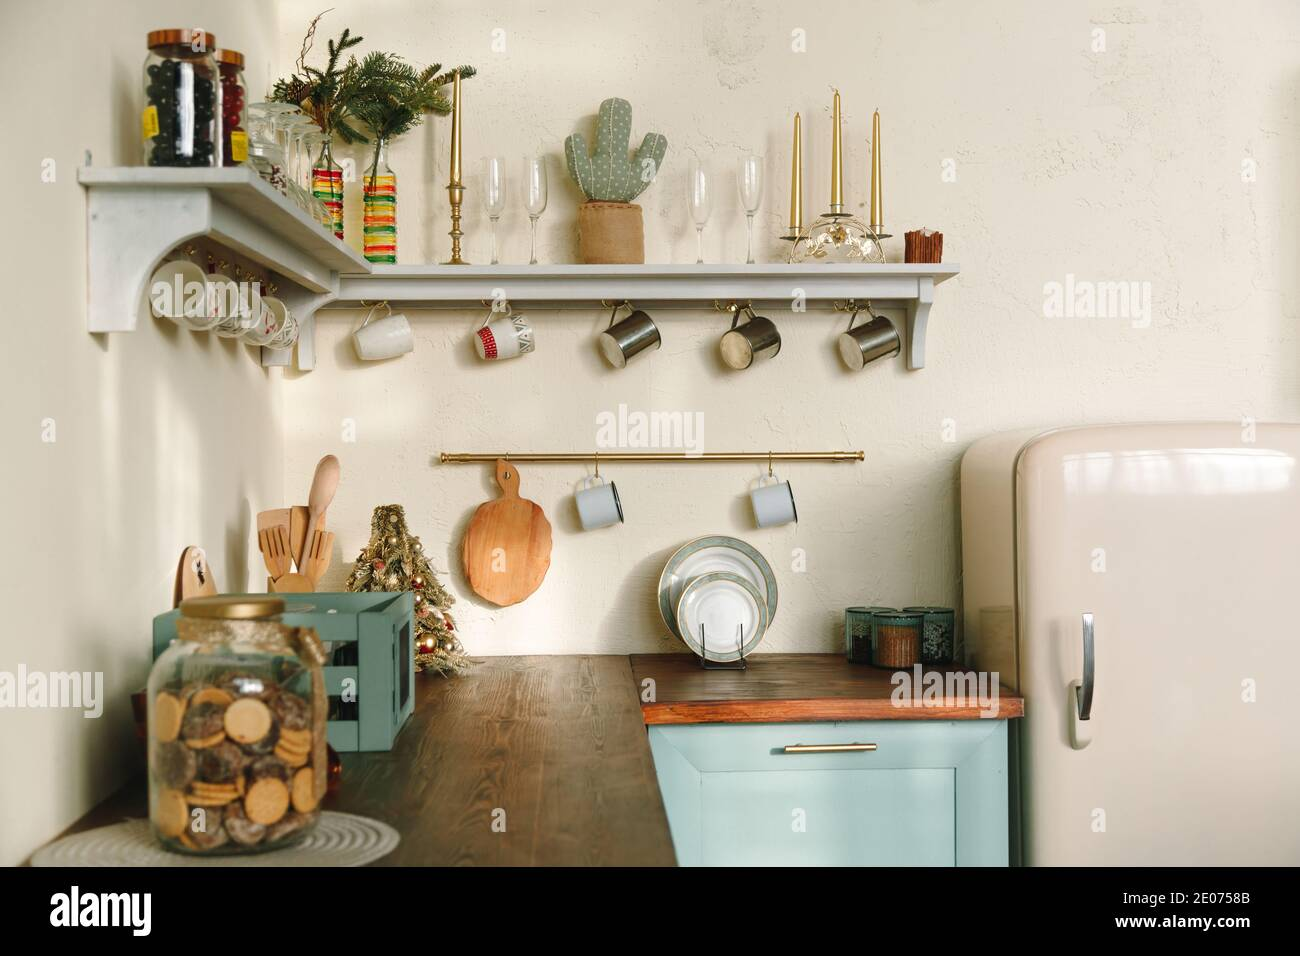 Rustic Kitchen Shelf High Resolution Stock Photography And Images Alamy